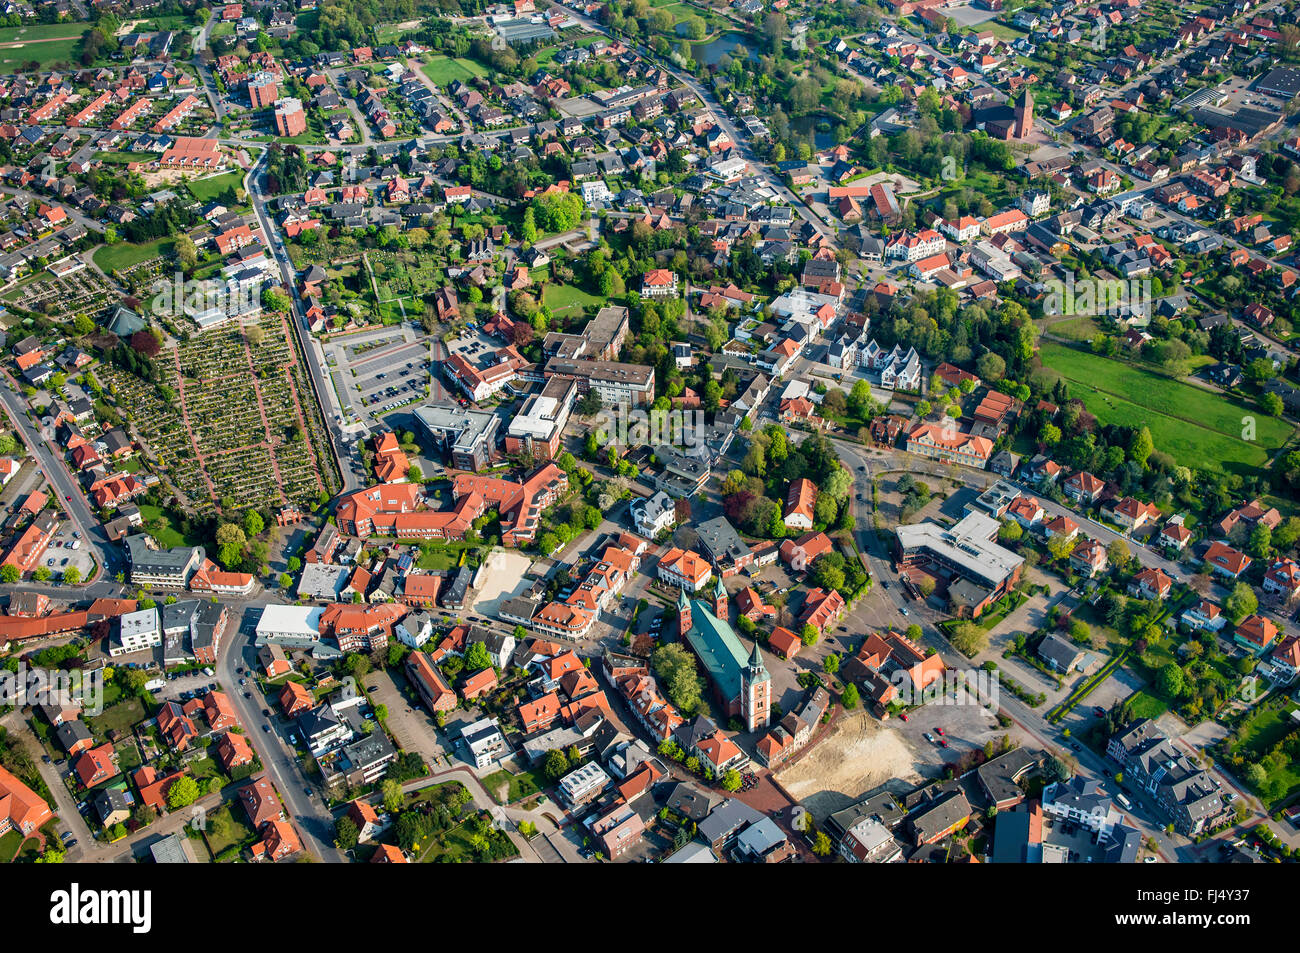 city centre of Lohne in Landkreis Vechta, aerial view, Germany, Lower Saxony, Oldenburger Muensterland, Lohne - Stock Image